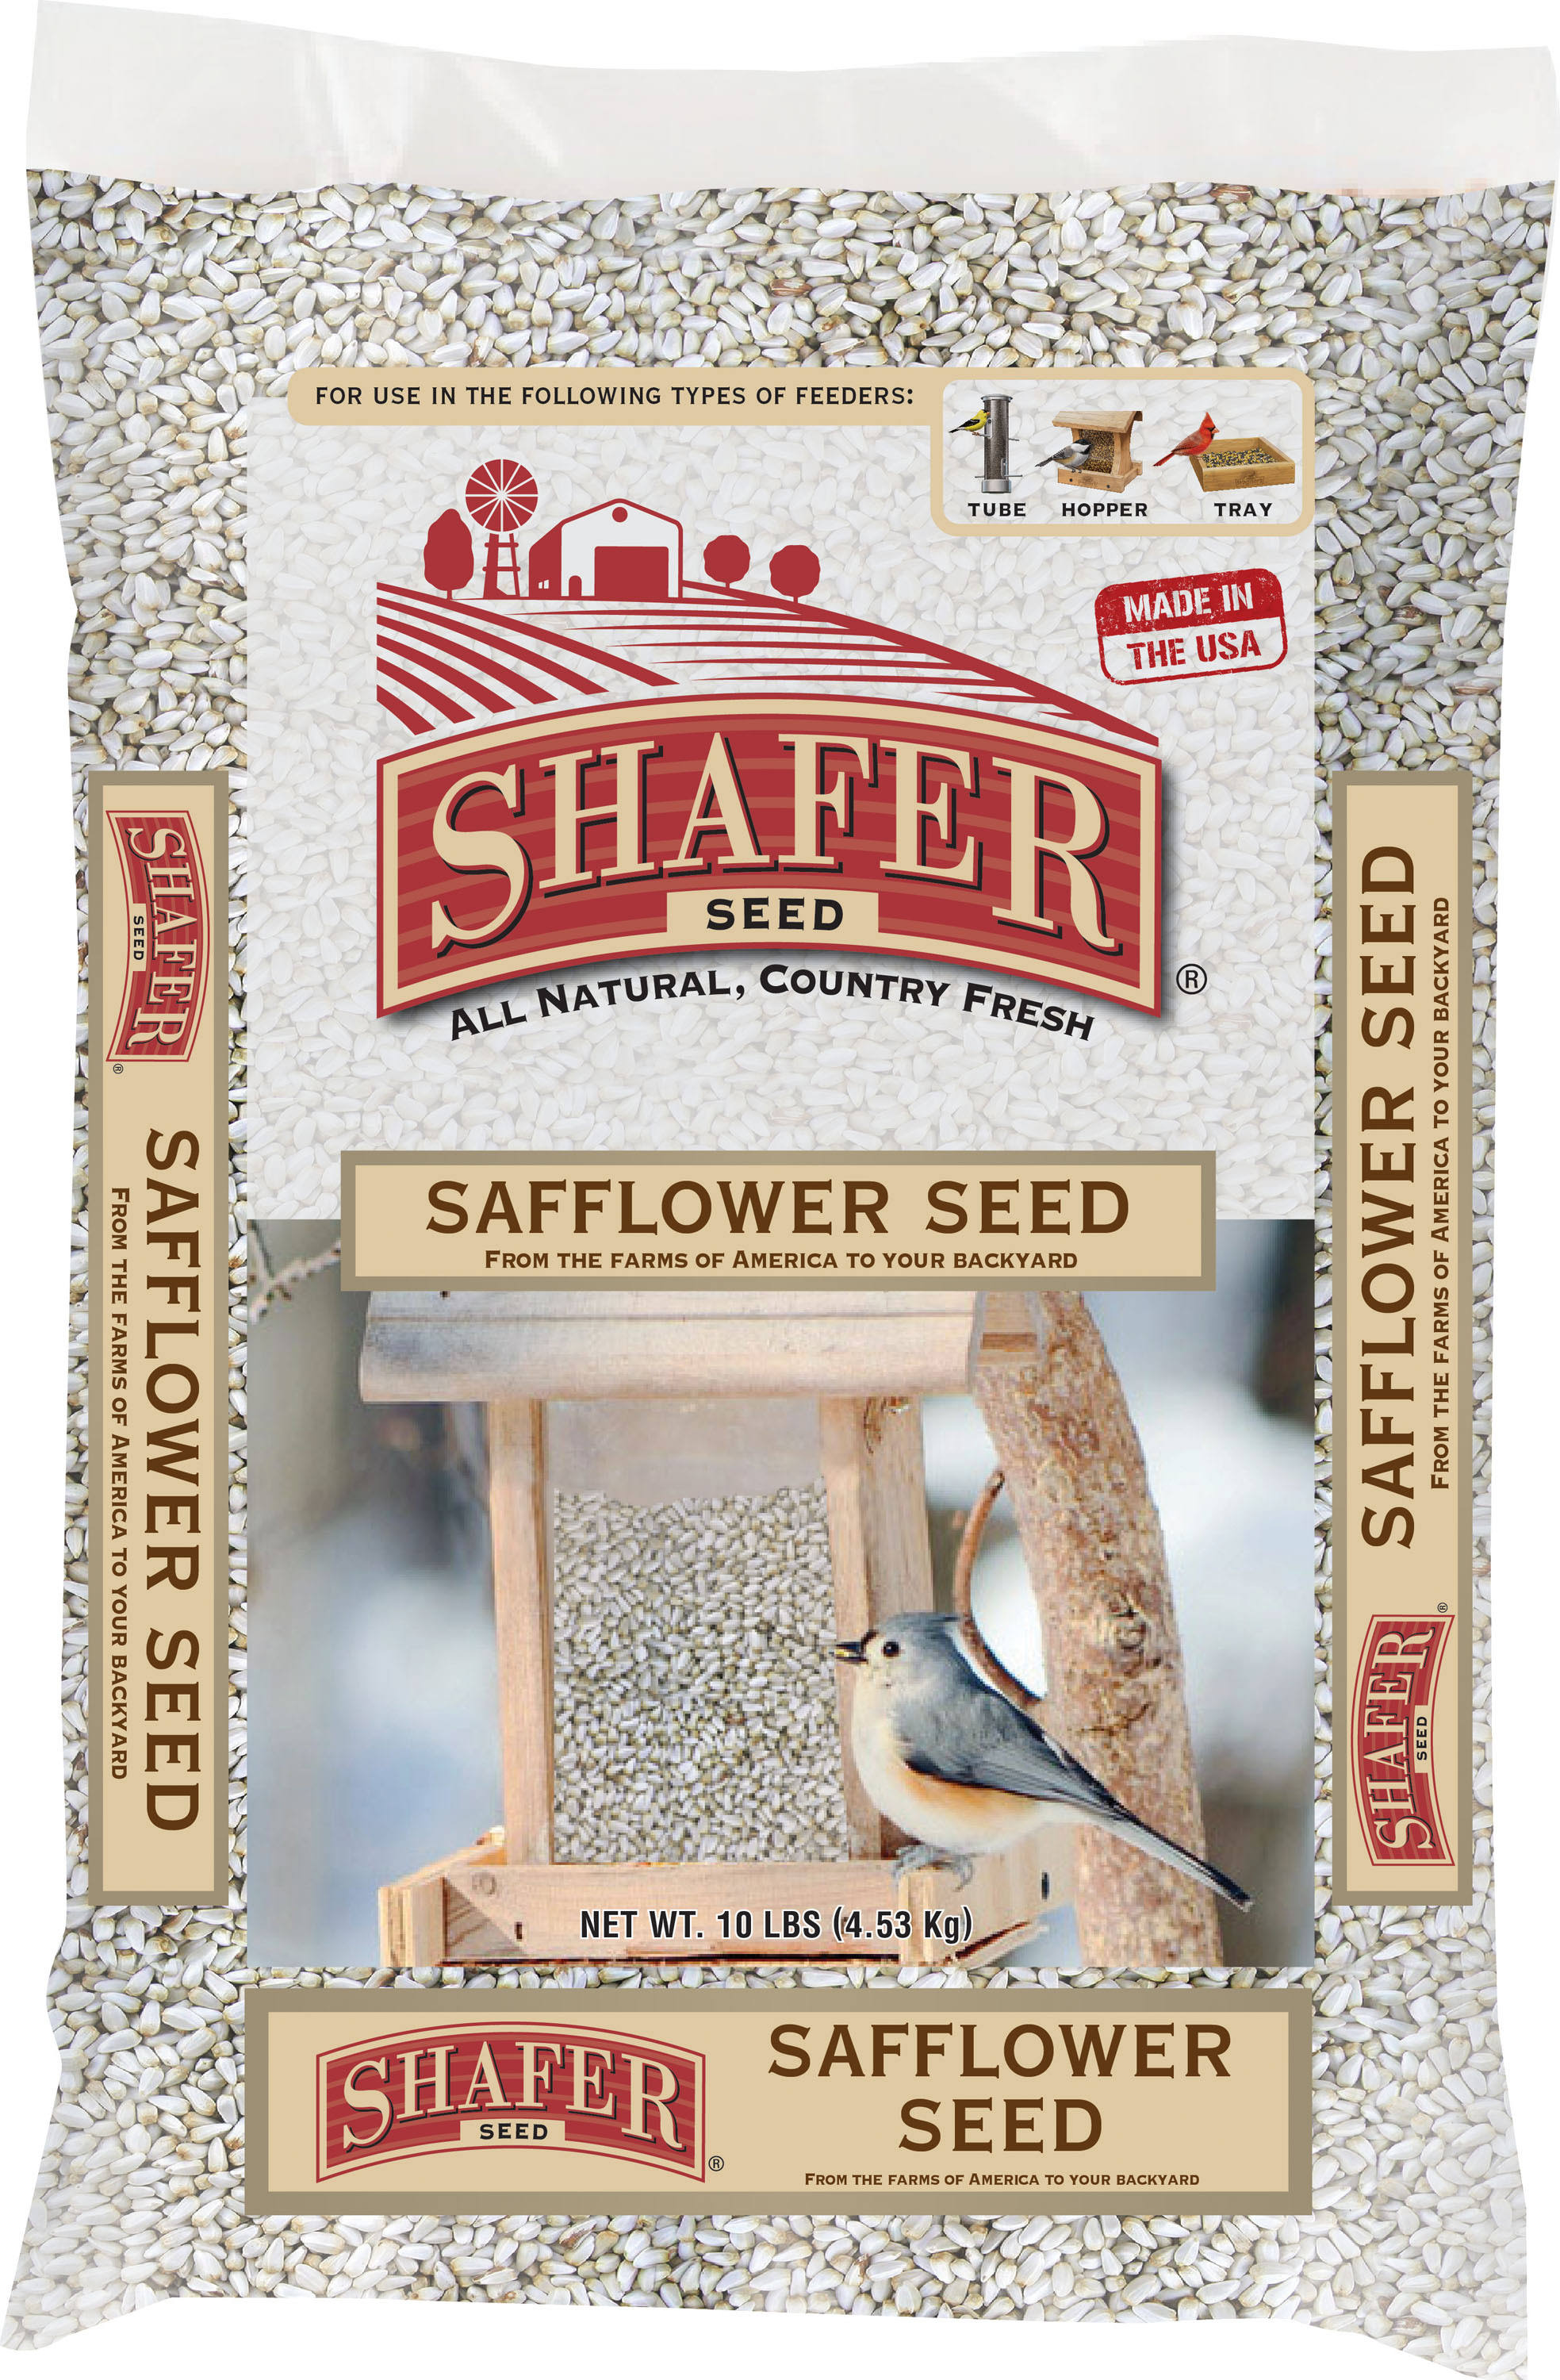 Shafer Seed Safflower Seed - 20 lb.